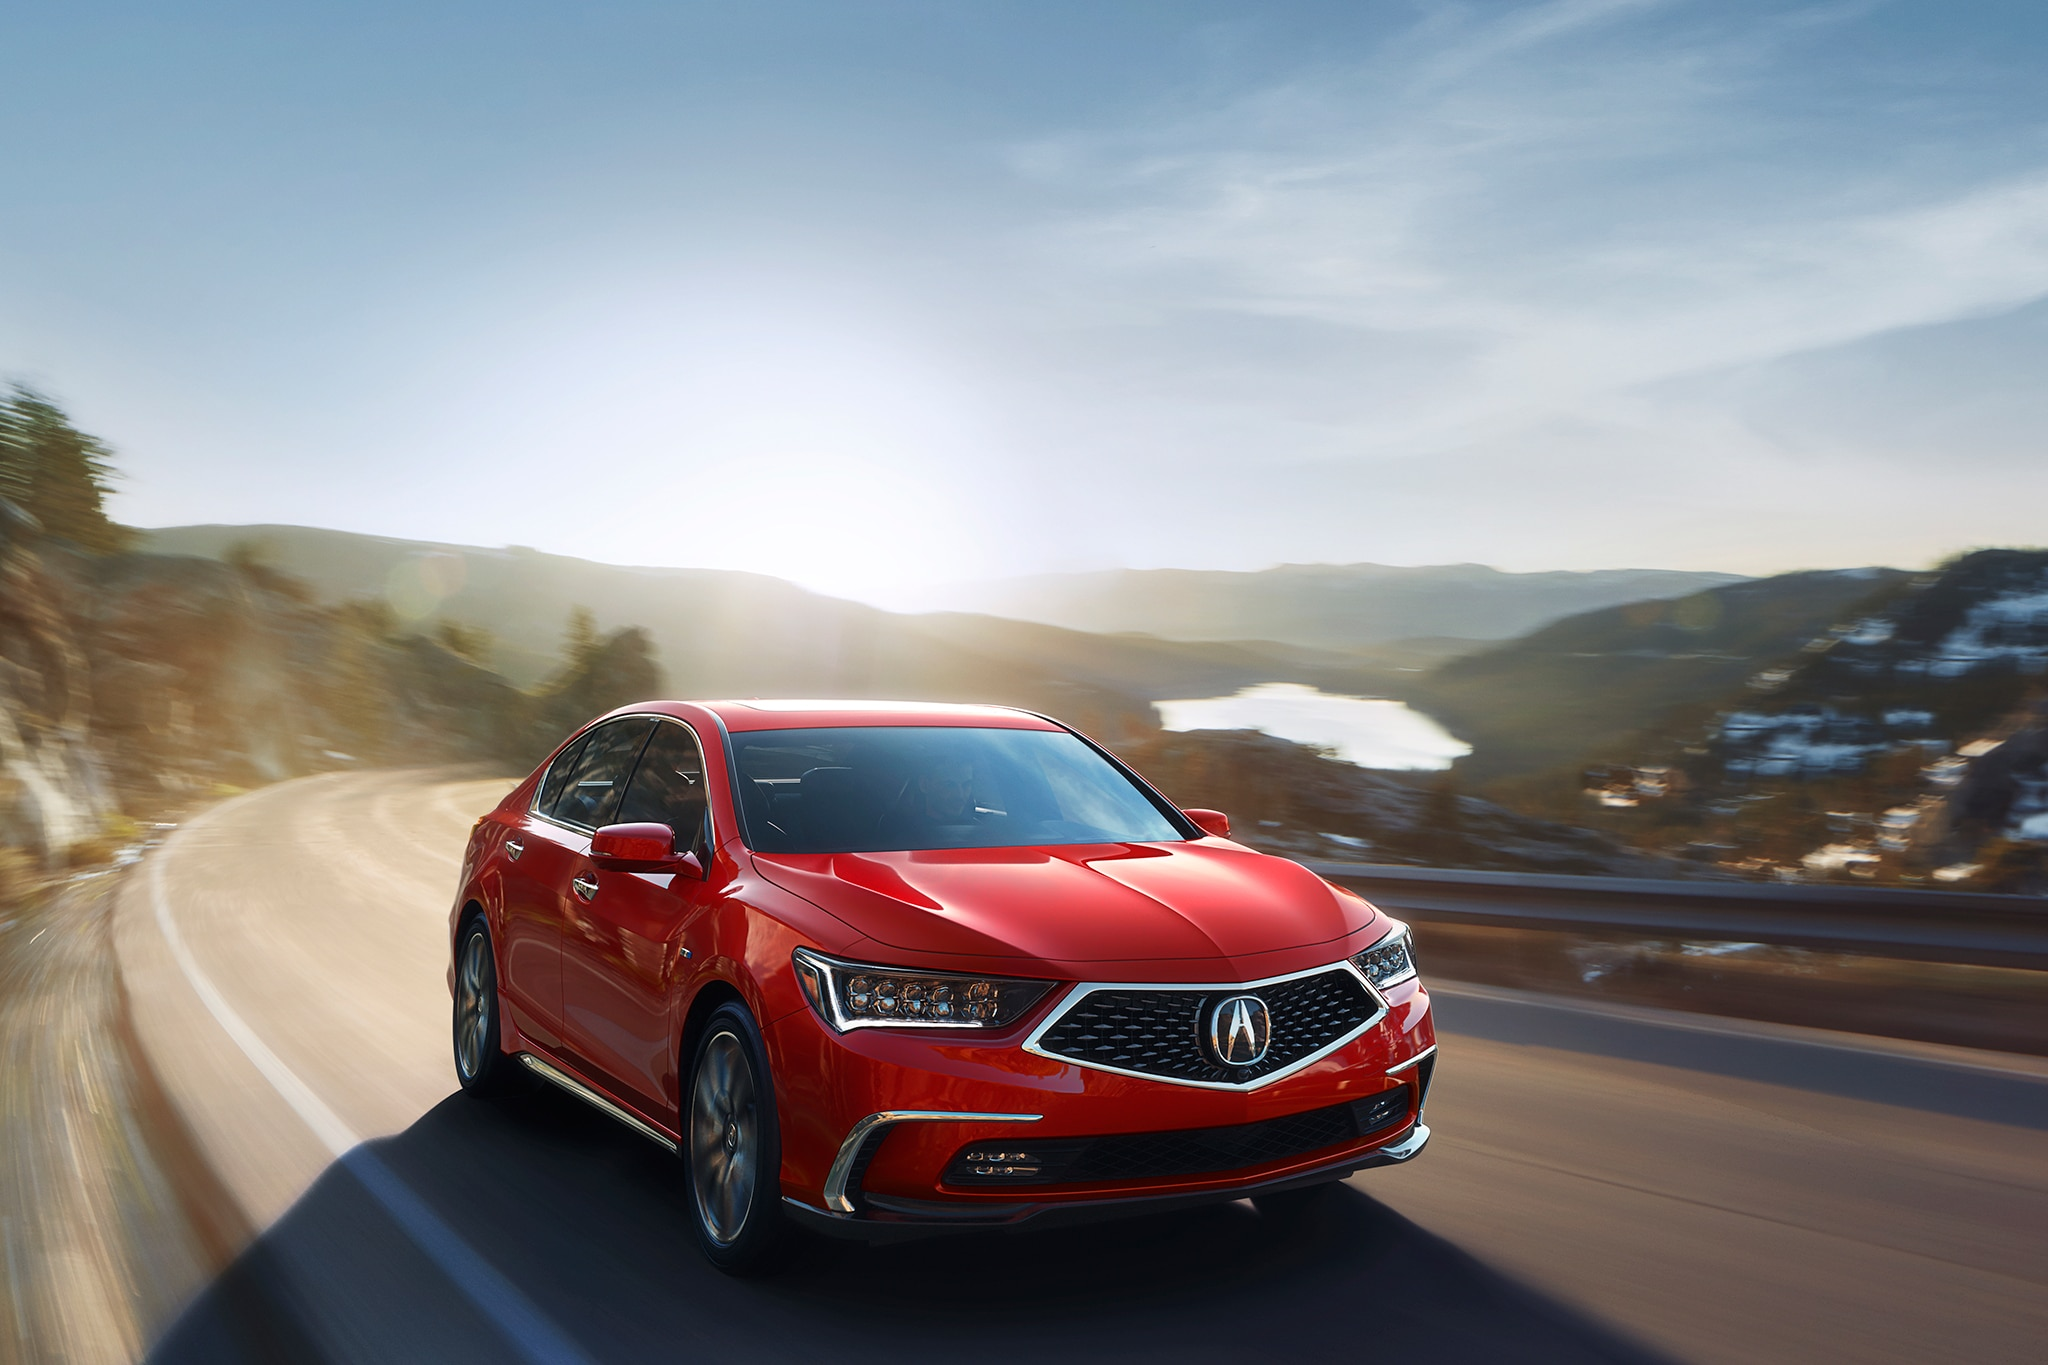 Acura RLX Breaks Cover With New Face And More Tech